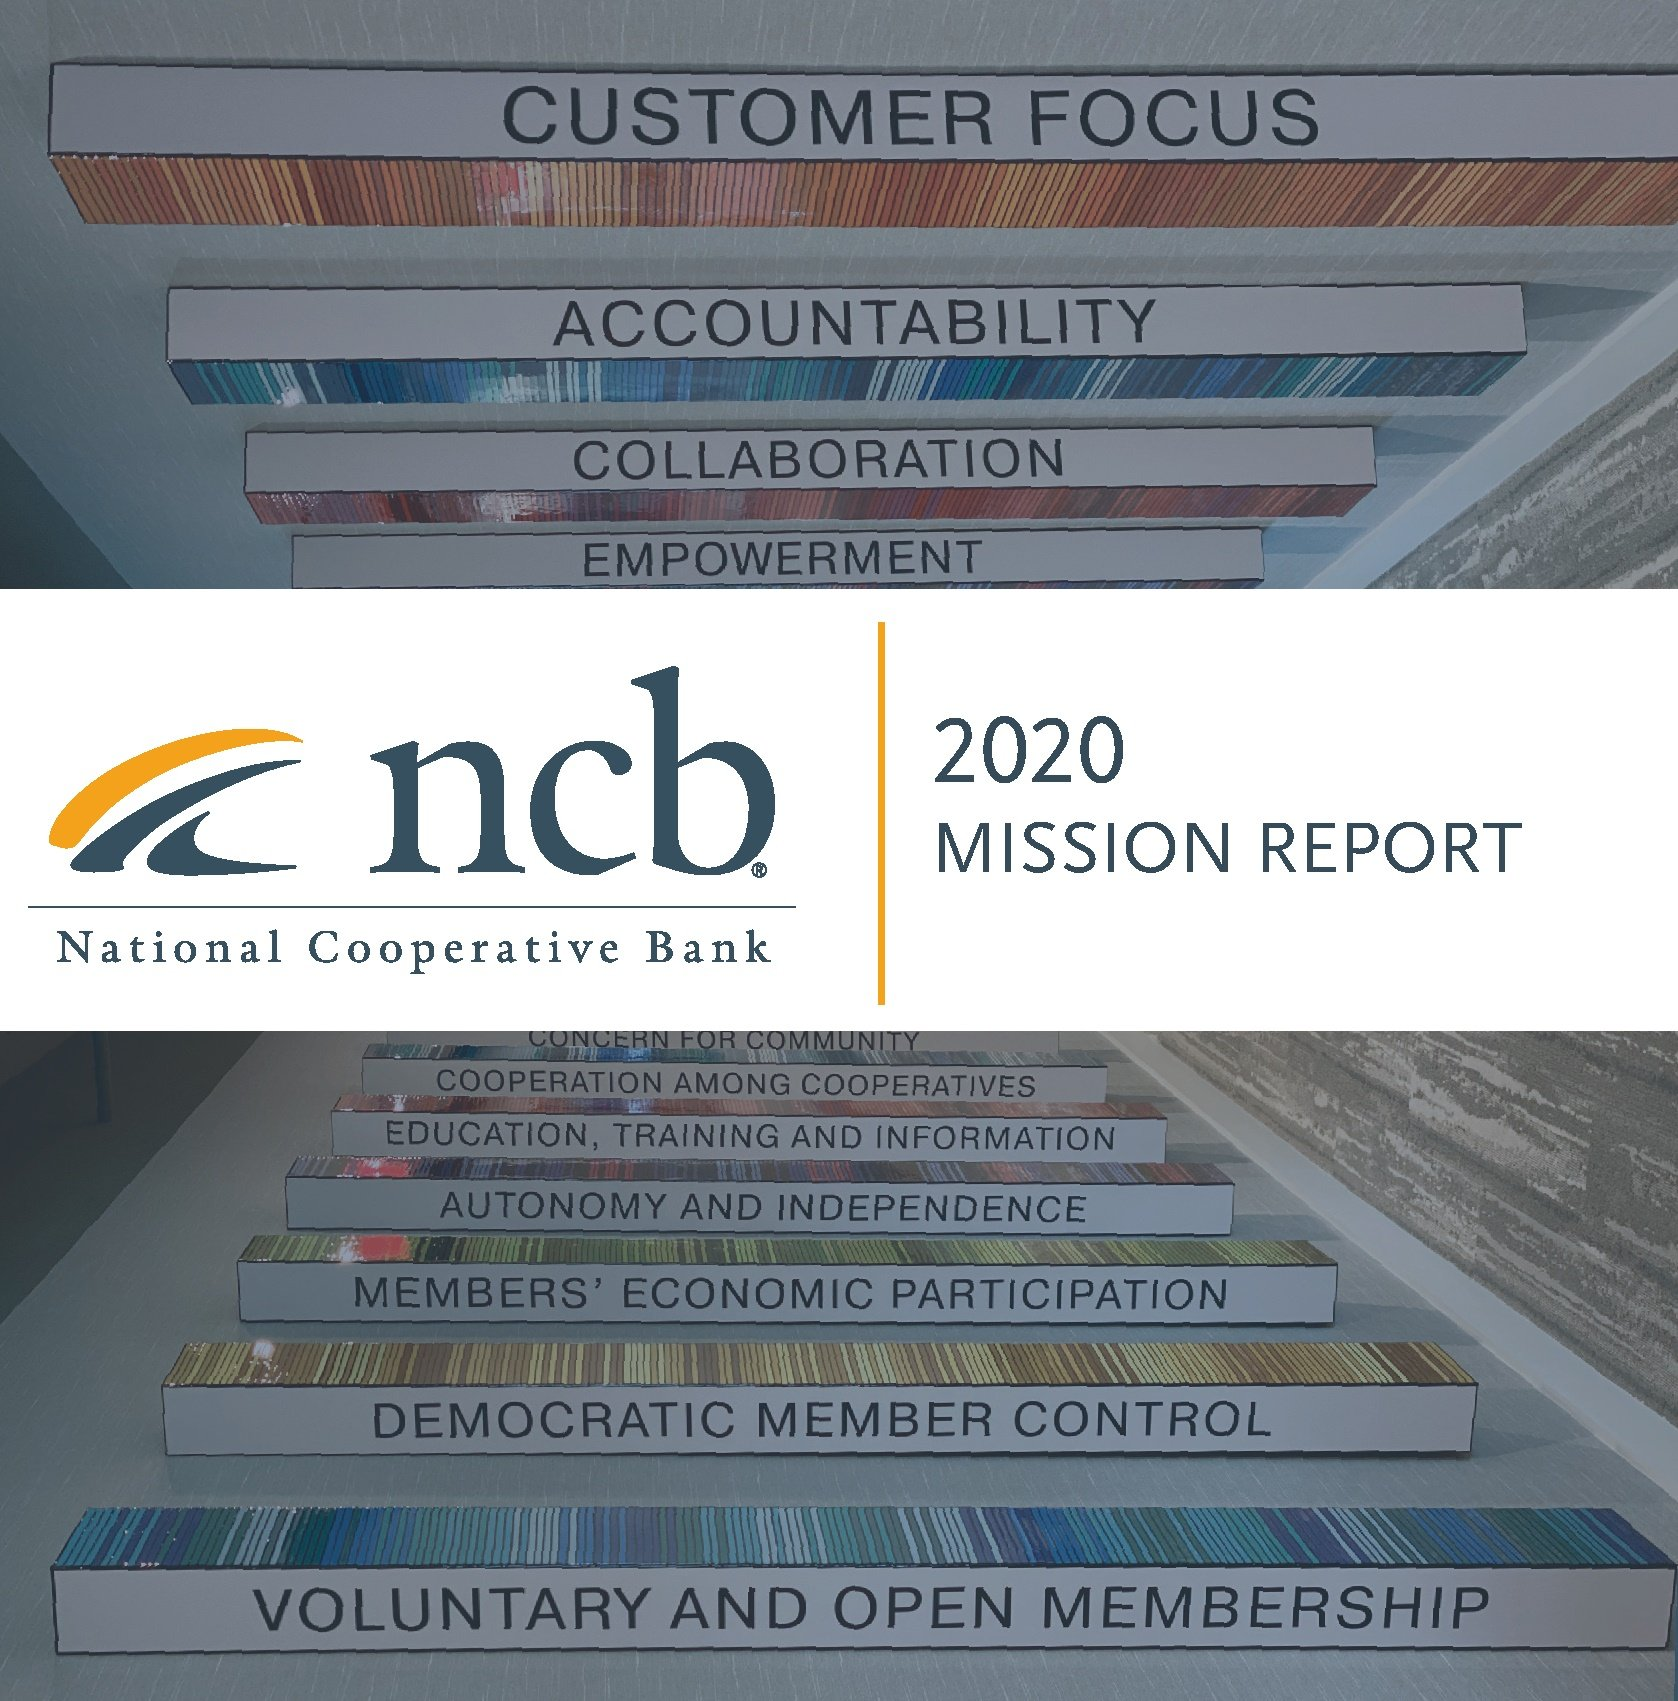 National Cooperative Bank Releases 2020 Mission Report Highlighting Lending, Advocacy, Economic Development and DEI Initiatives